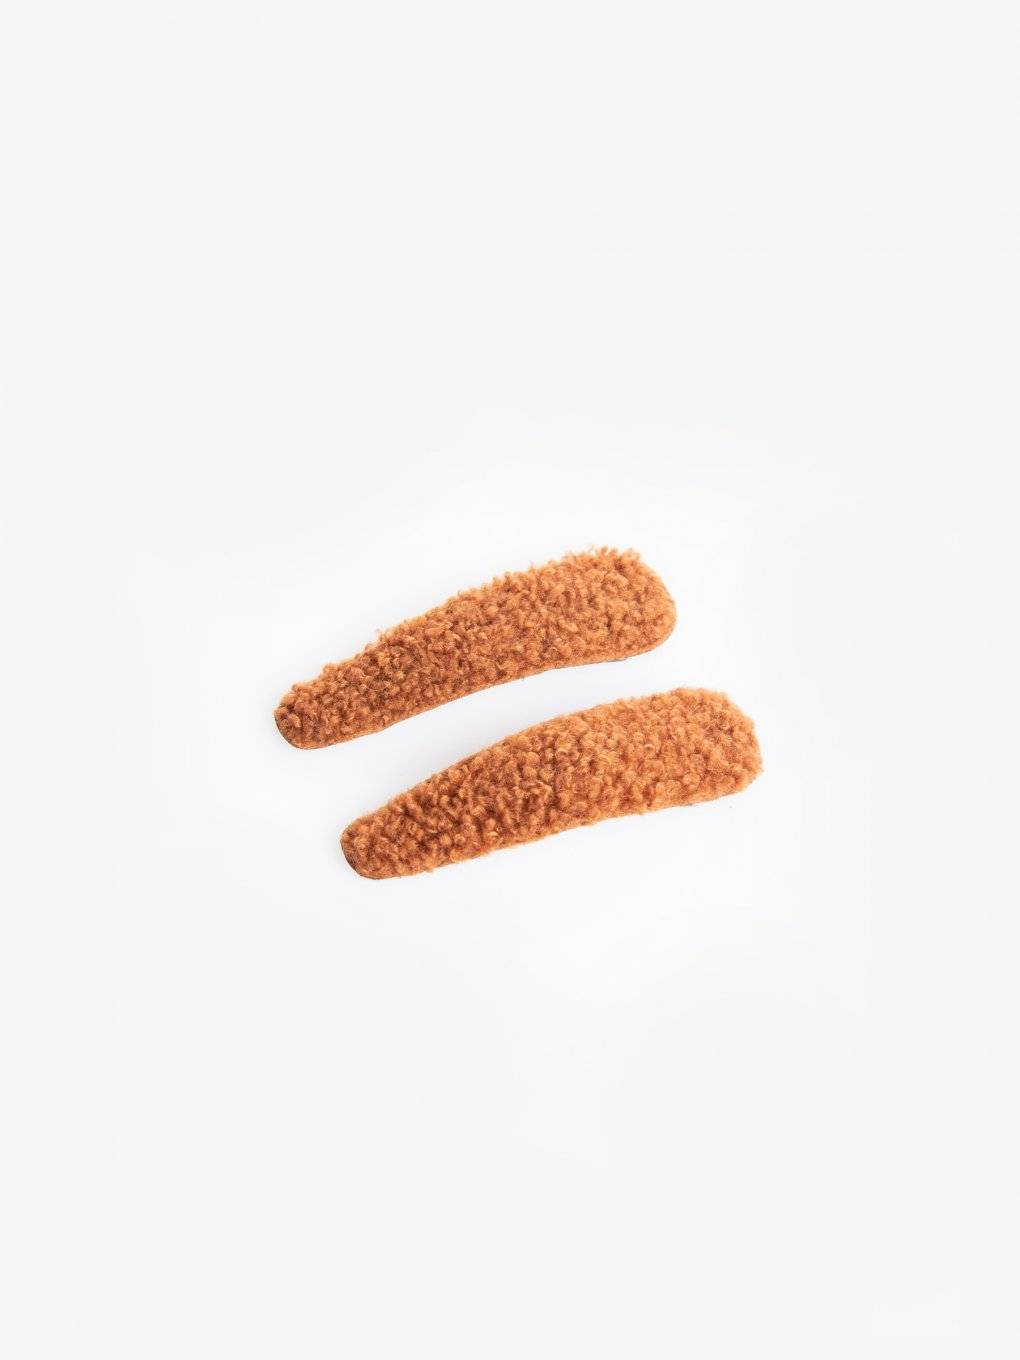 2-pack of hair grip